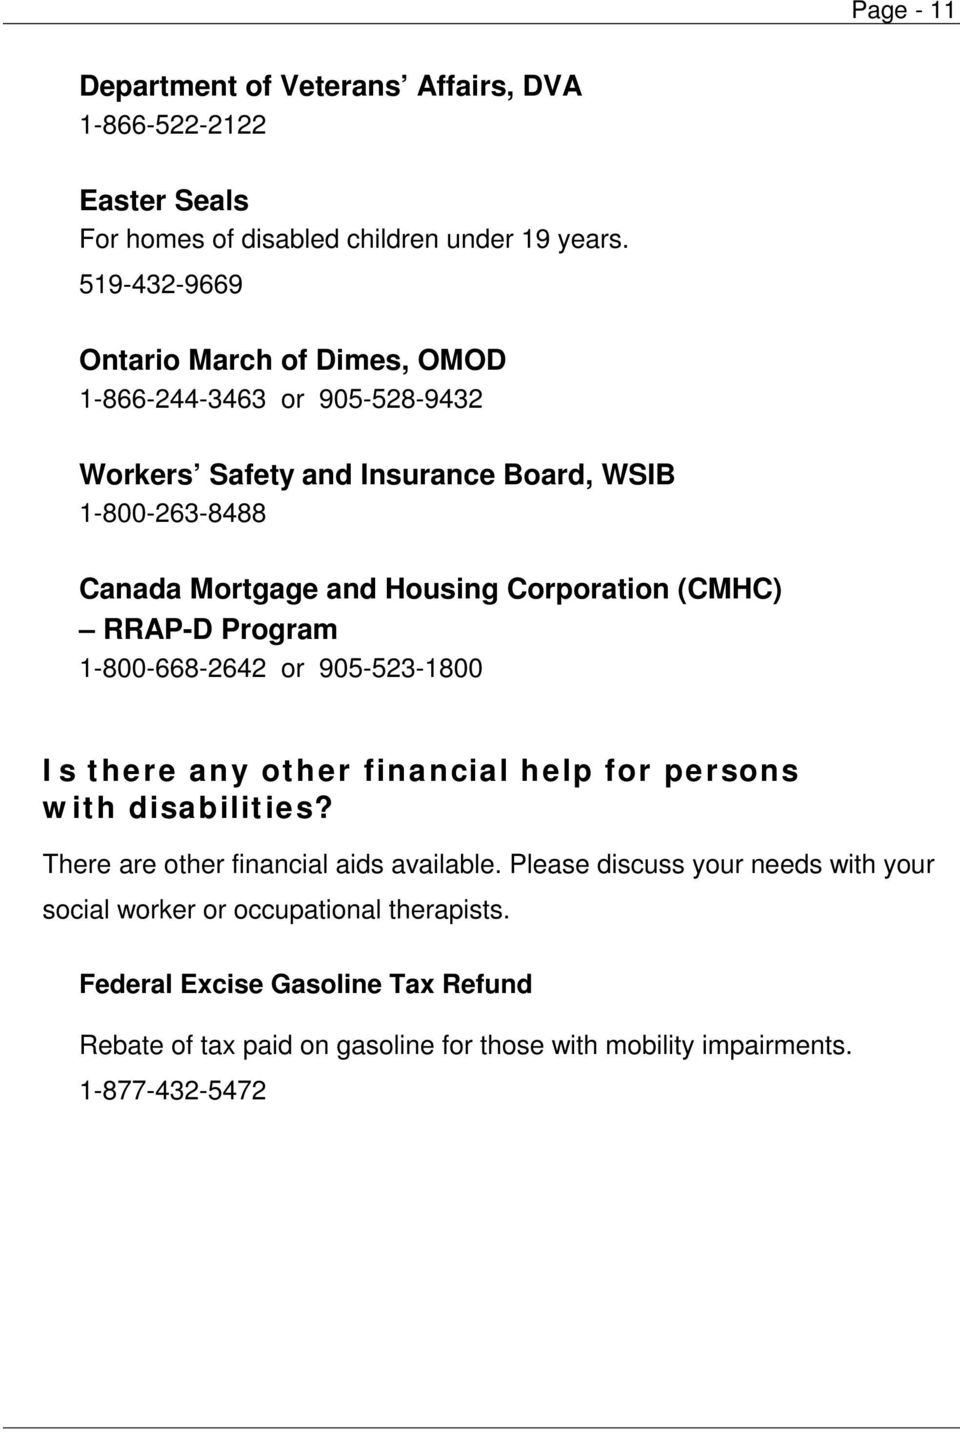 Corporation (CMHC) RRAP-D Program 1-800-668-2642 or 905-523-1800 Is there any other financial help for persons with disabilities?